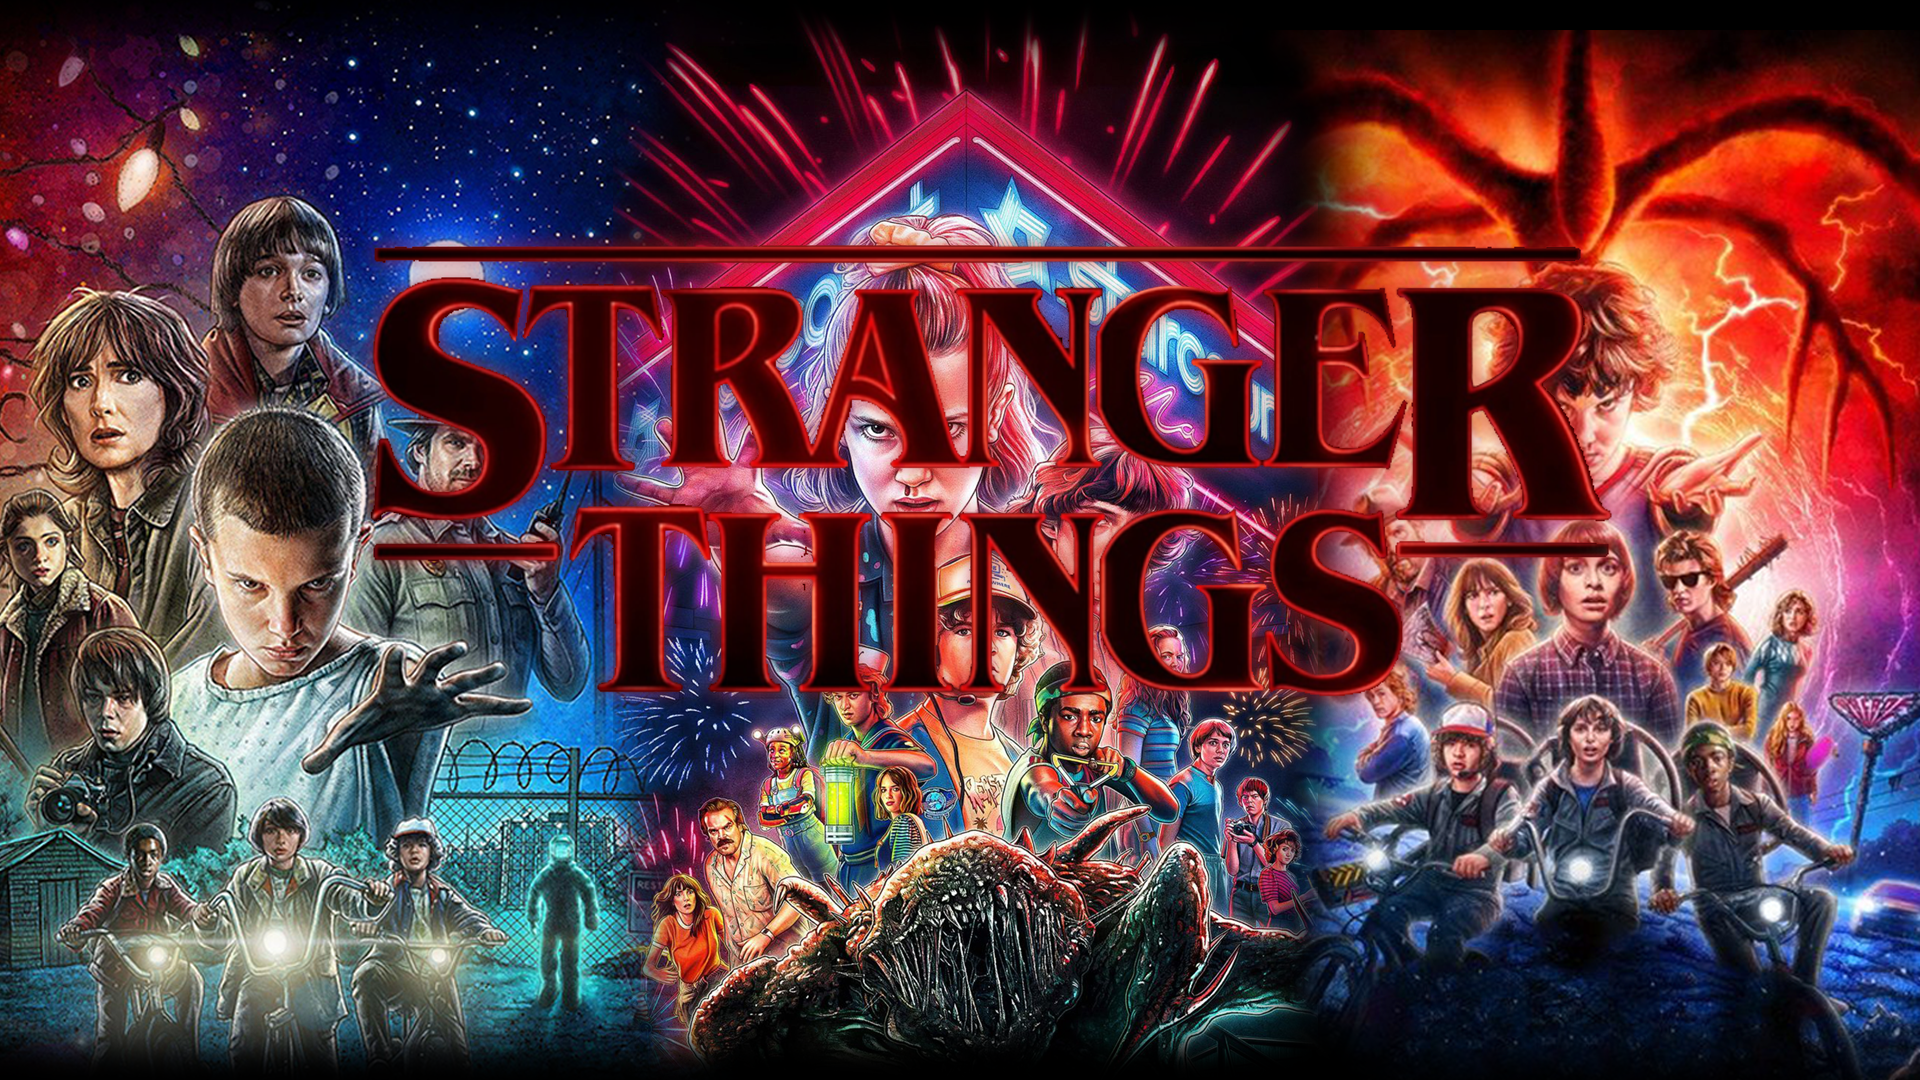 Stranger Things S1 S2 S3 1920x1080 Wallpapers